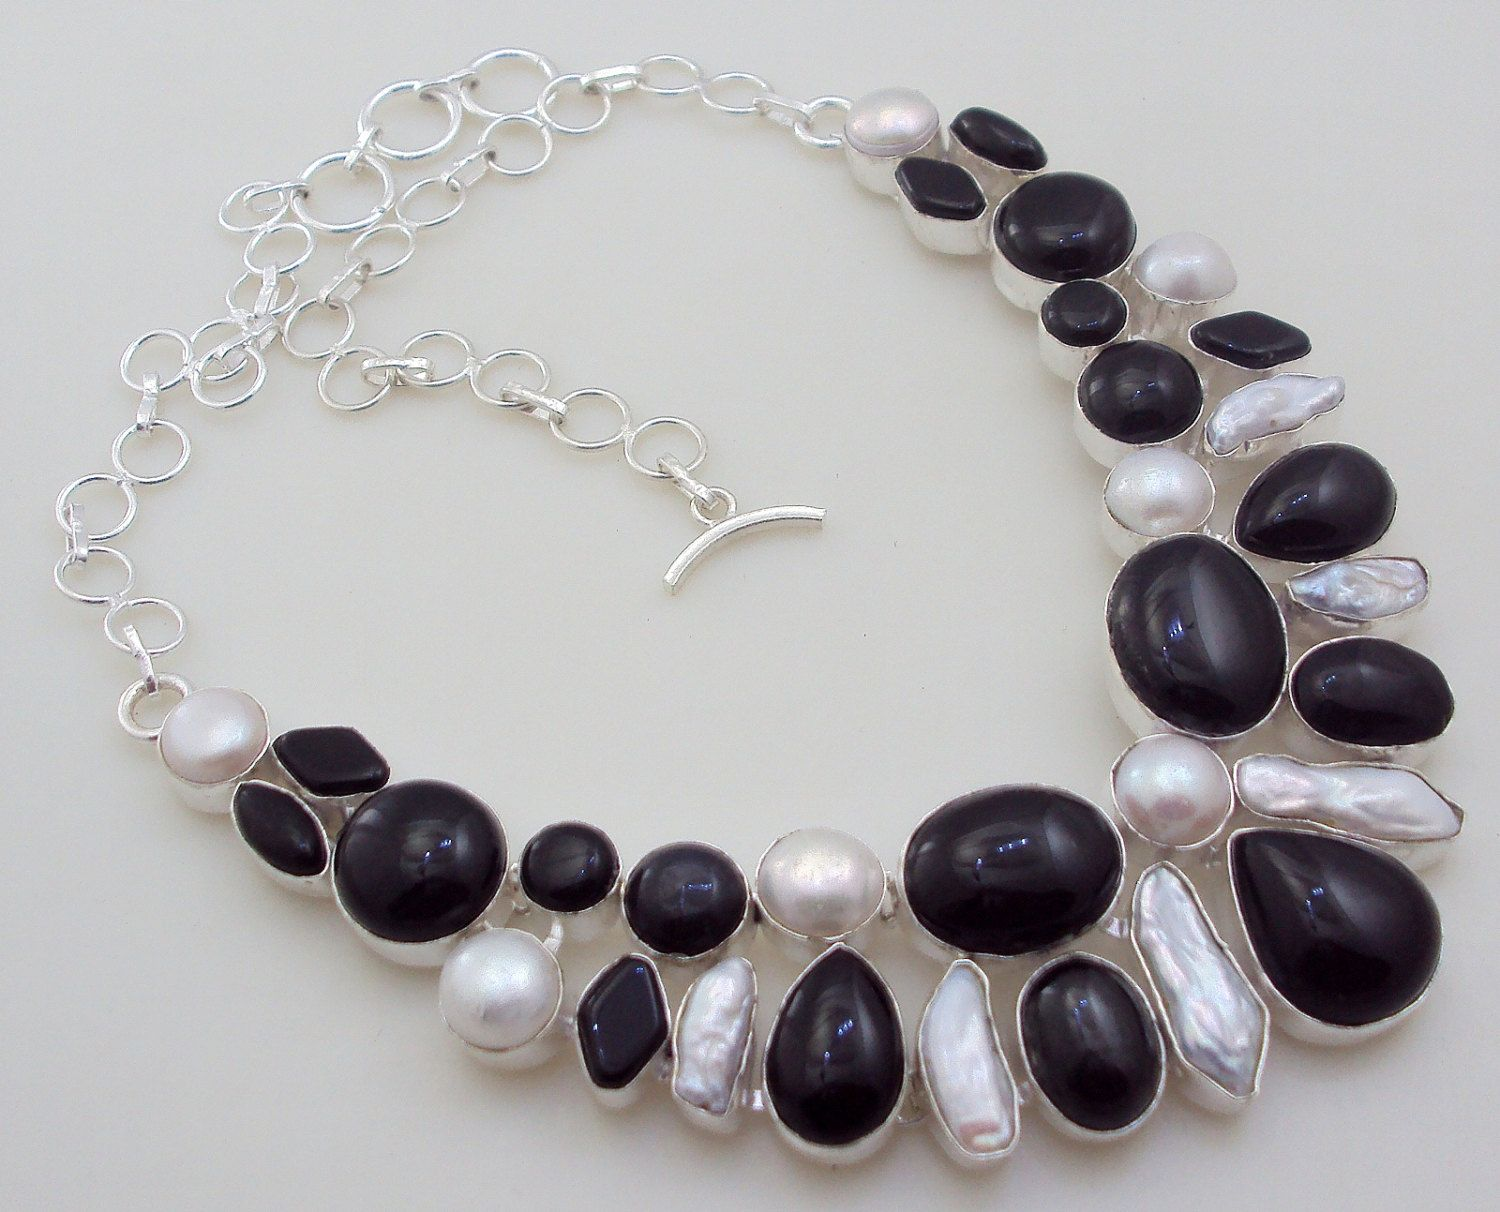 105 gram stunning BIWA PEARL- ONYX .925 sterling silver handmade  necklace  free shipping by OCEANJEWELLERS on Etsy